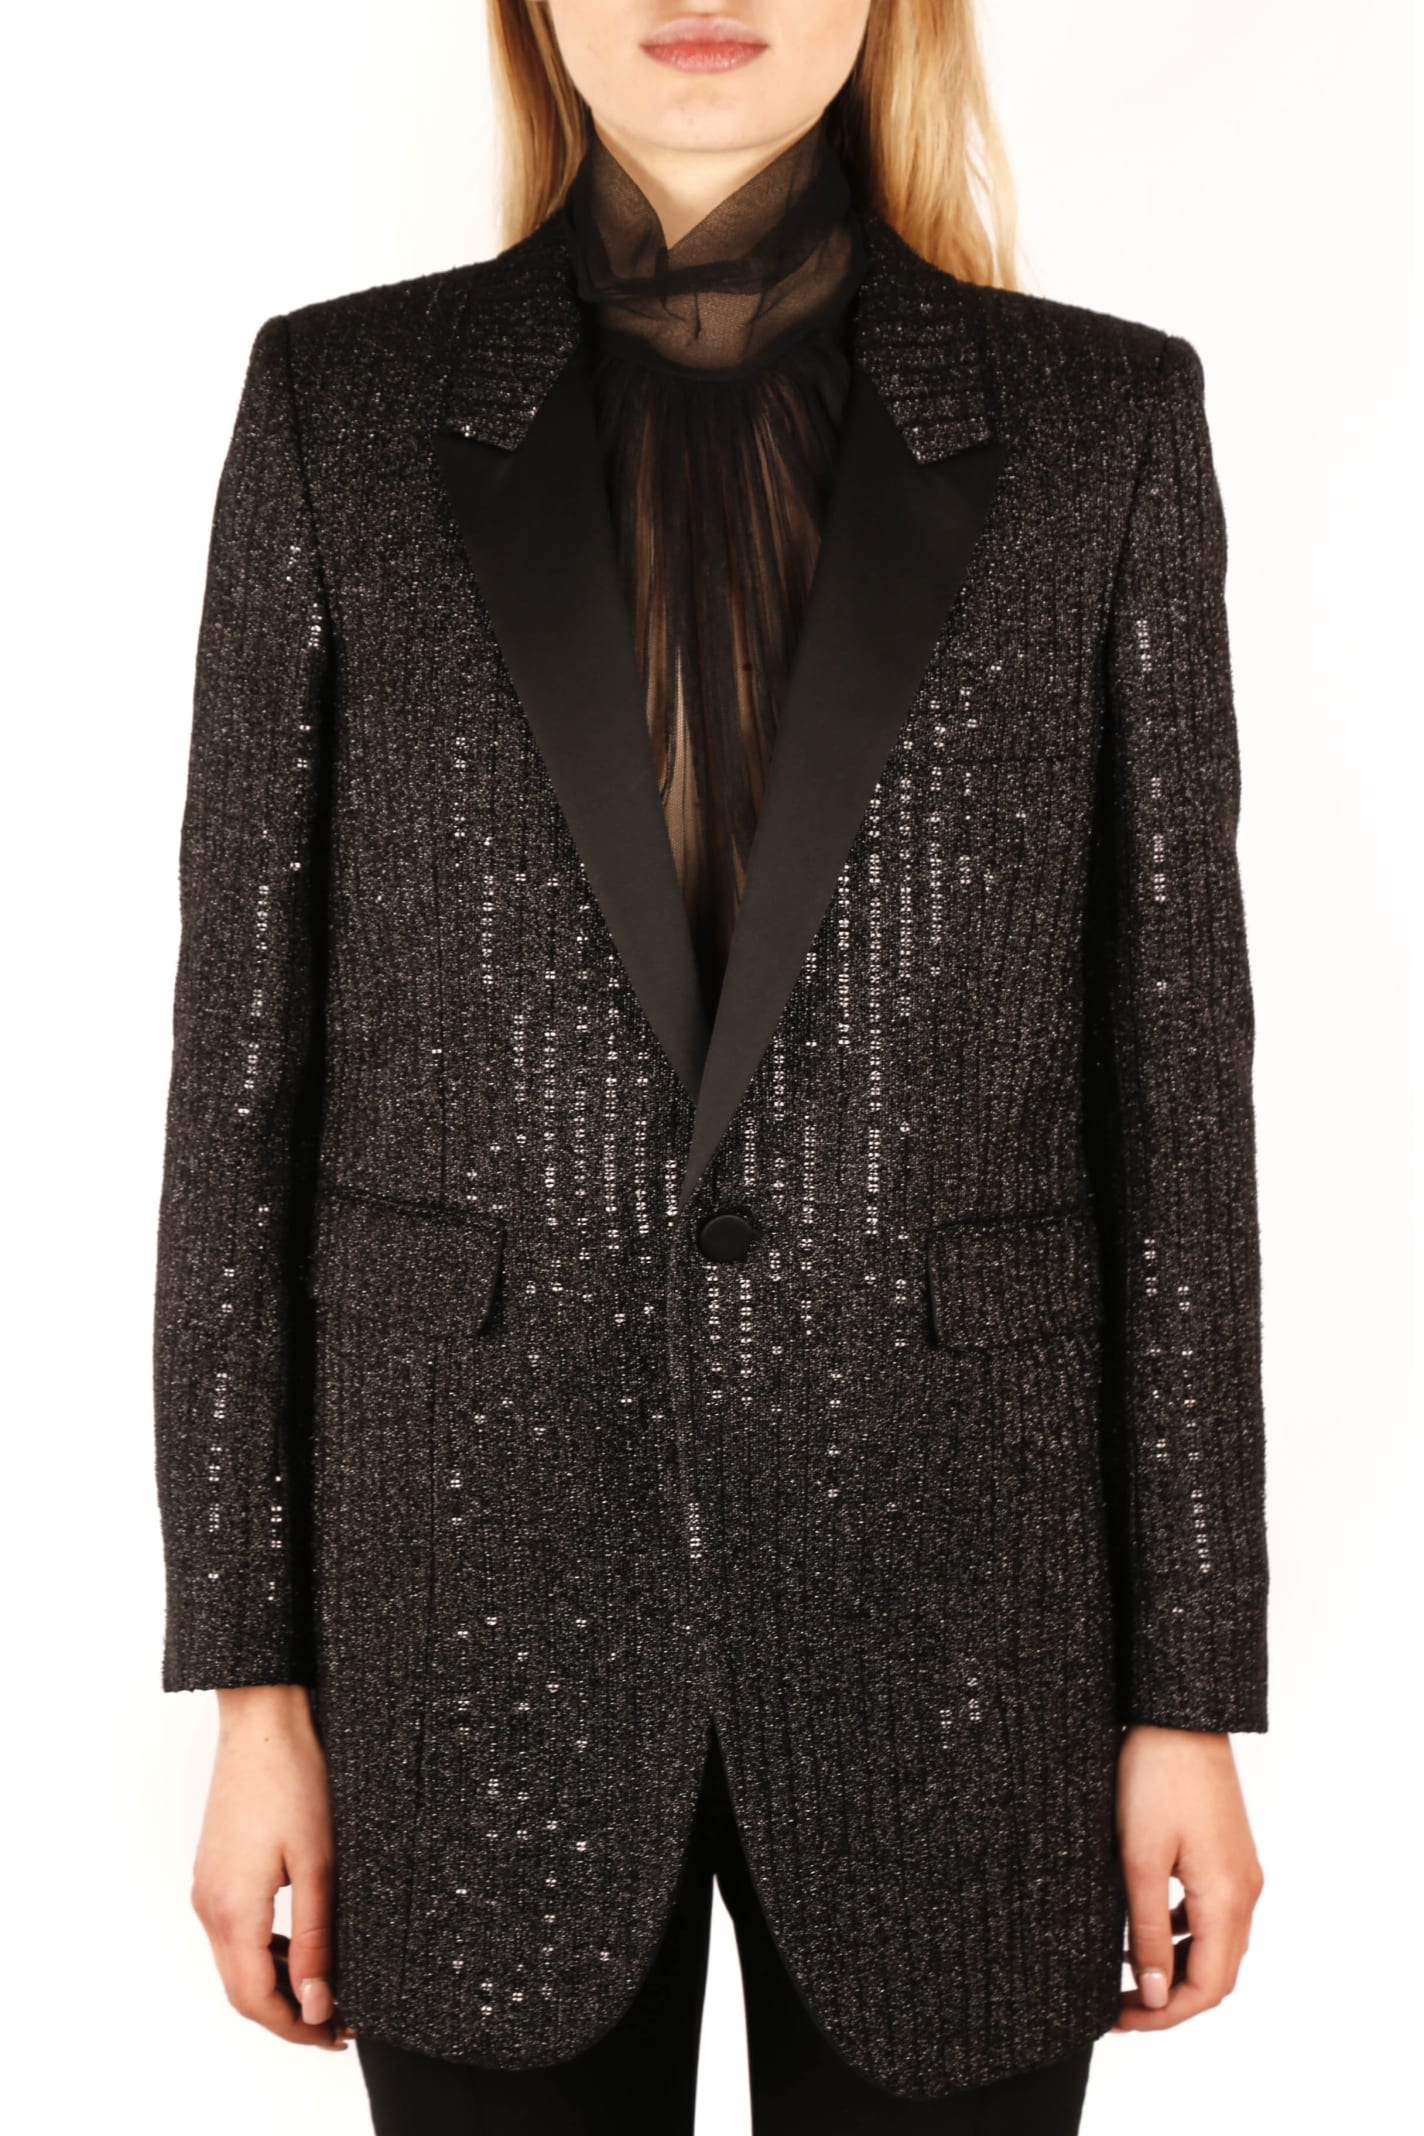 Saint Laurent Black Silk Sequined Blazer